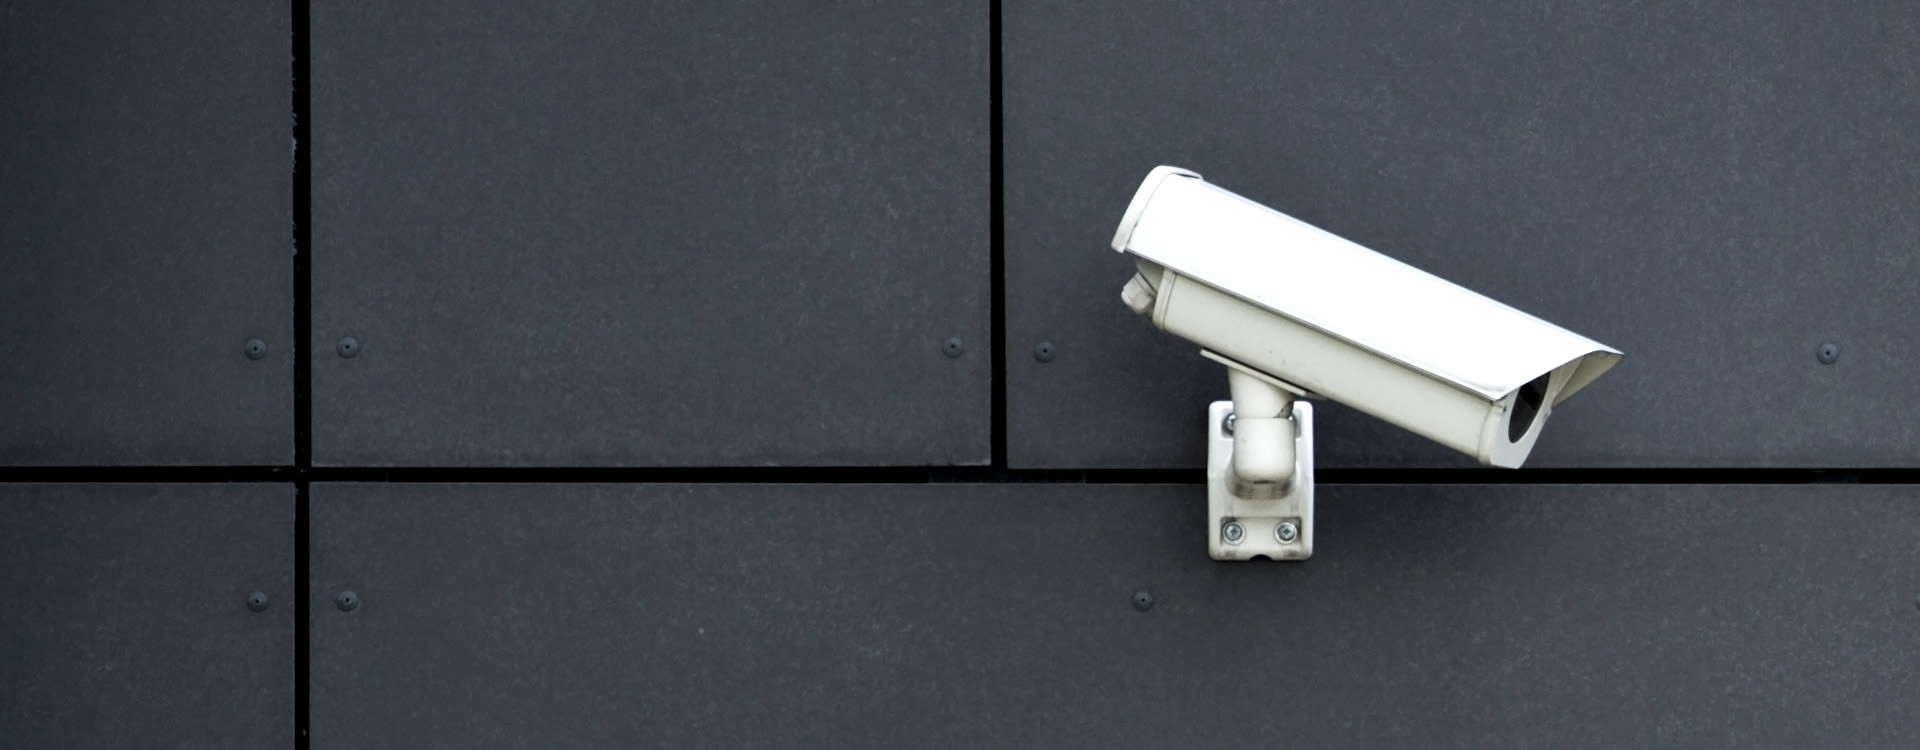 how to use old android phone as cctv camera